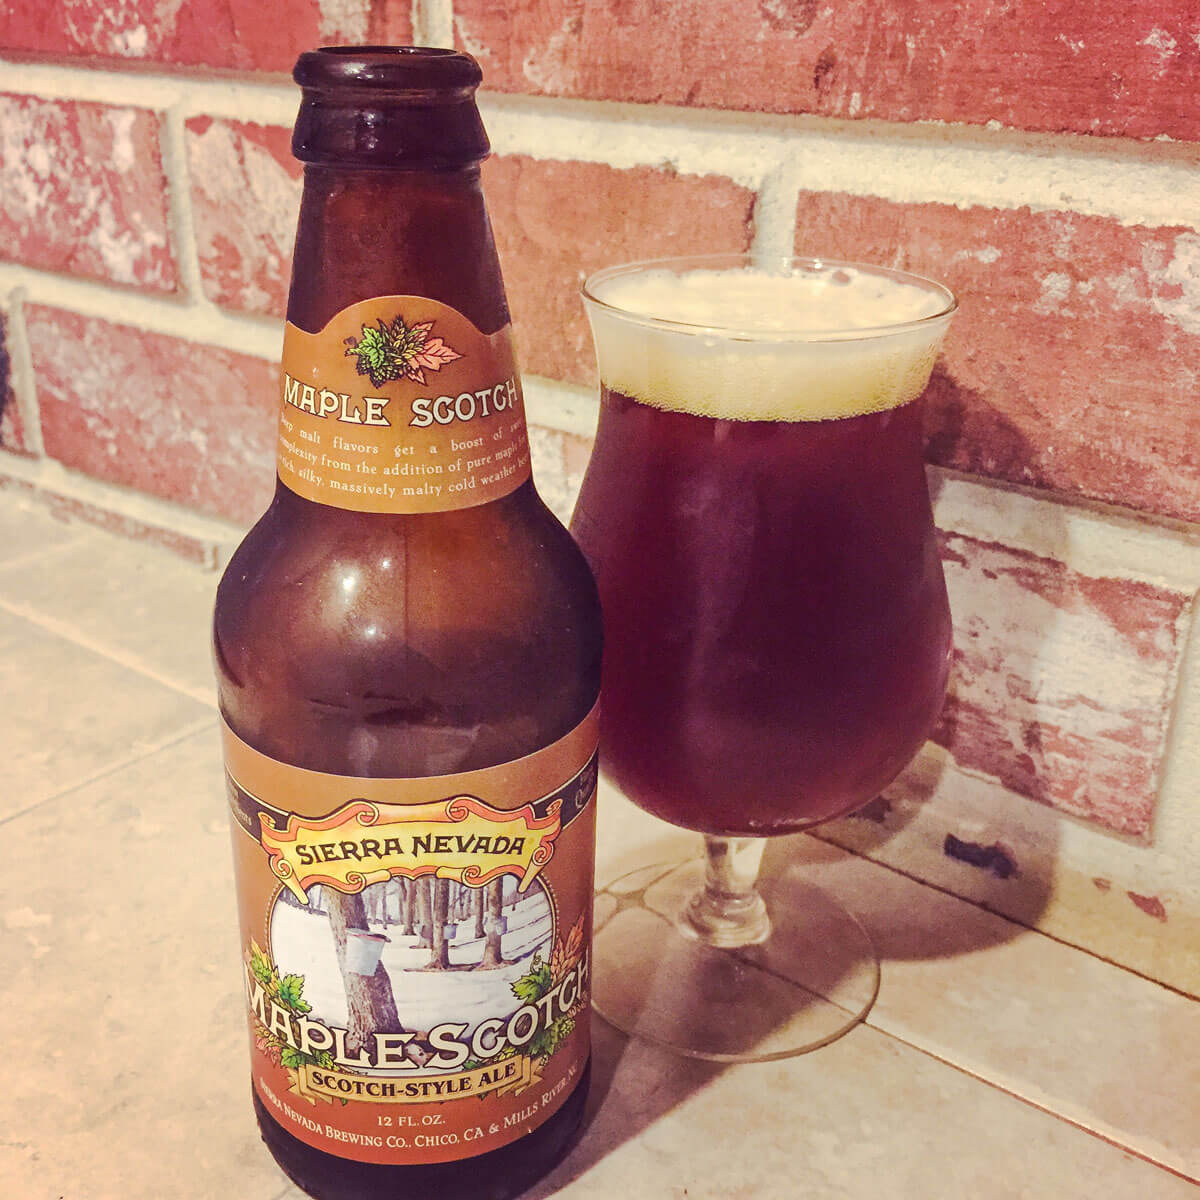 Maple Scotch, a Scottish Ale by Sierra Nevada Brewing Co.